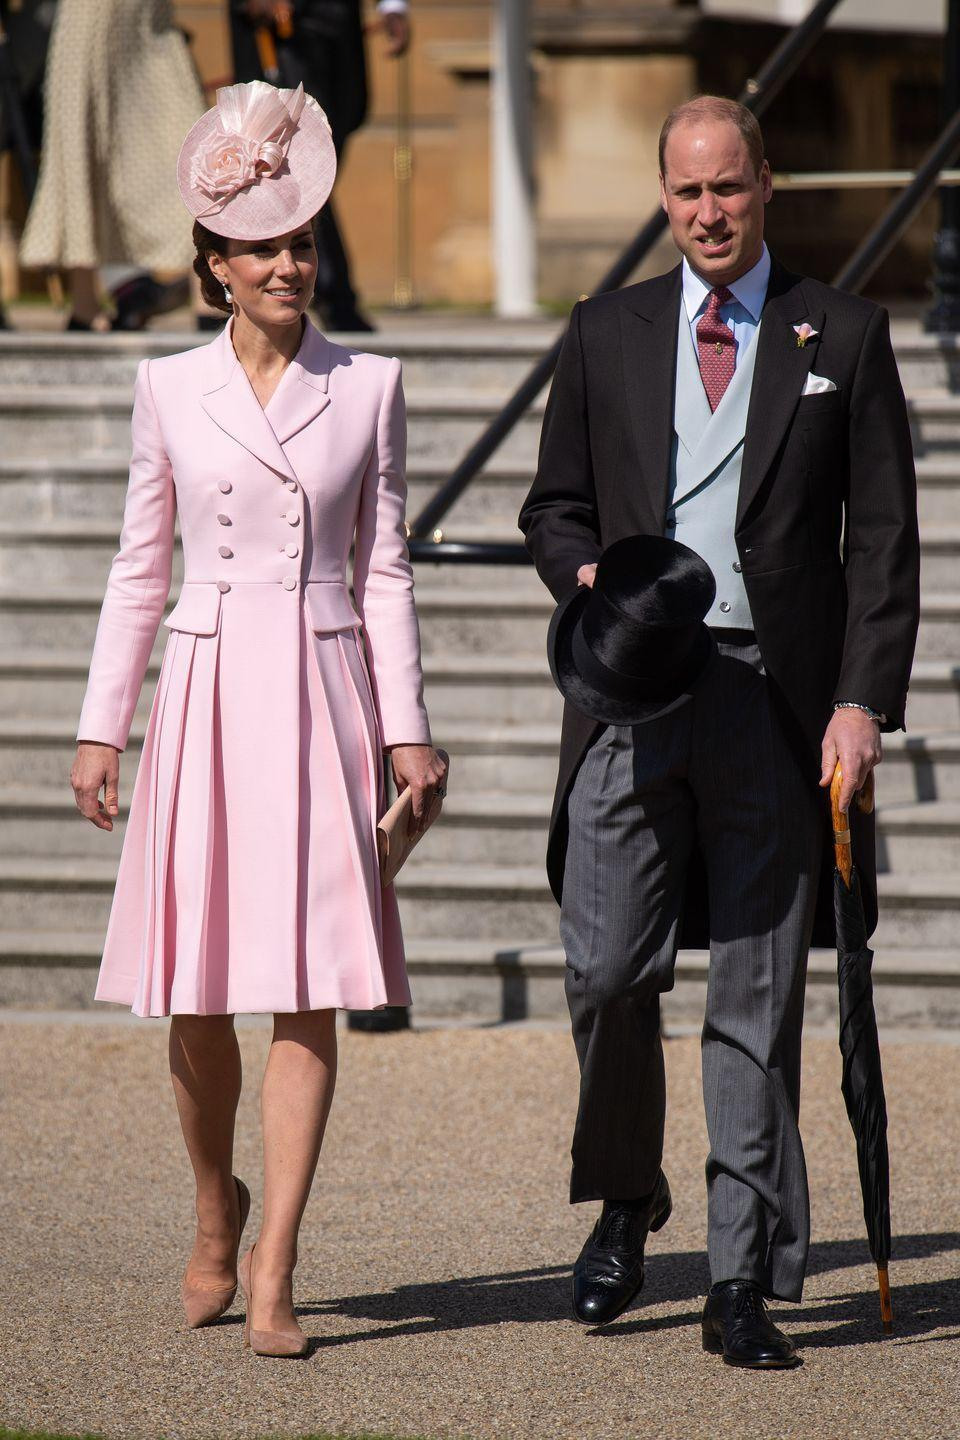 """<p><a href=""""https://www.townandcountrymag.com/style/fashion-trends/a27542768/kate-middleton-pink-alexander-mcqueen-buckingham-palace-garden-party-2019/"""" rel=""""nofollow noopener"""" target=""""_blank"""" data-ylk=""""slk:At one of the Queen's Garden Parties, on the grounds of Buckingham Palace, Kate paired a coatdress"""" class=""""link rapid-noclick-resp"""">At one of the Queen's Garden Parties, on the grounds of Buckingham Palace, Kate paired a coatdress</a>—from one of her all-time favorite designers, Alexander McQueen—with a headpiece by Juliette Botterill.</p>"""